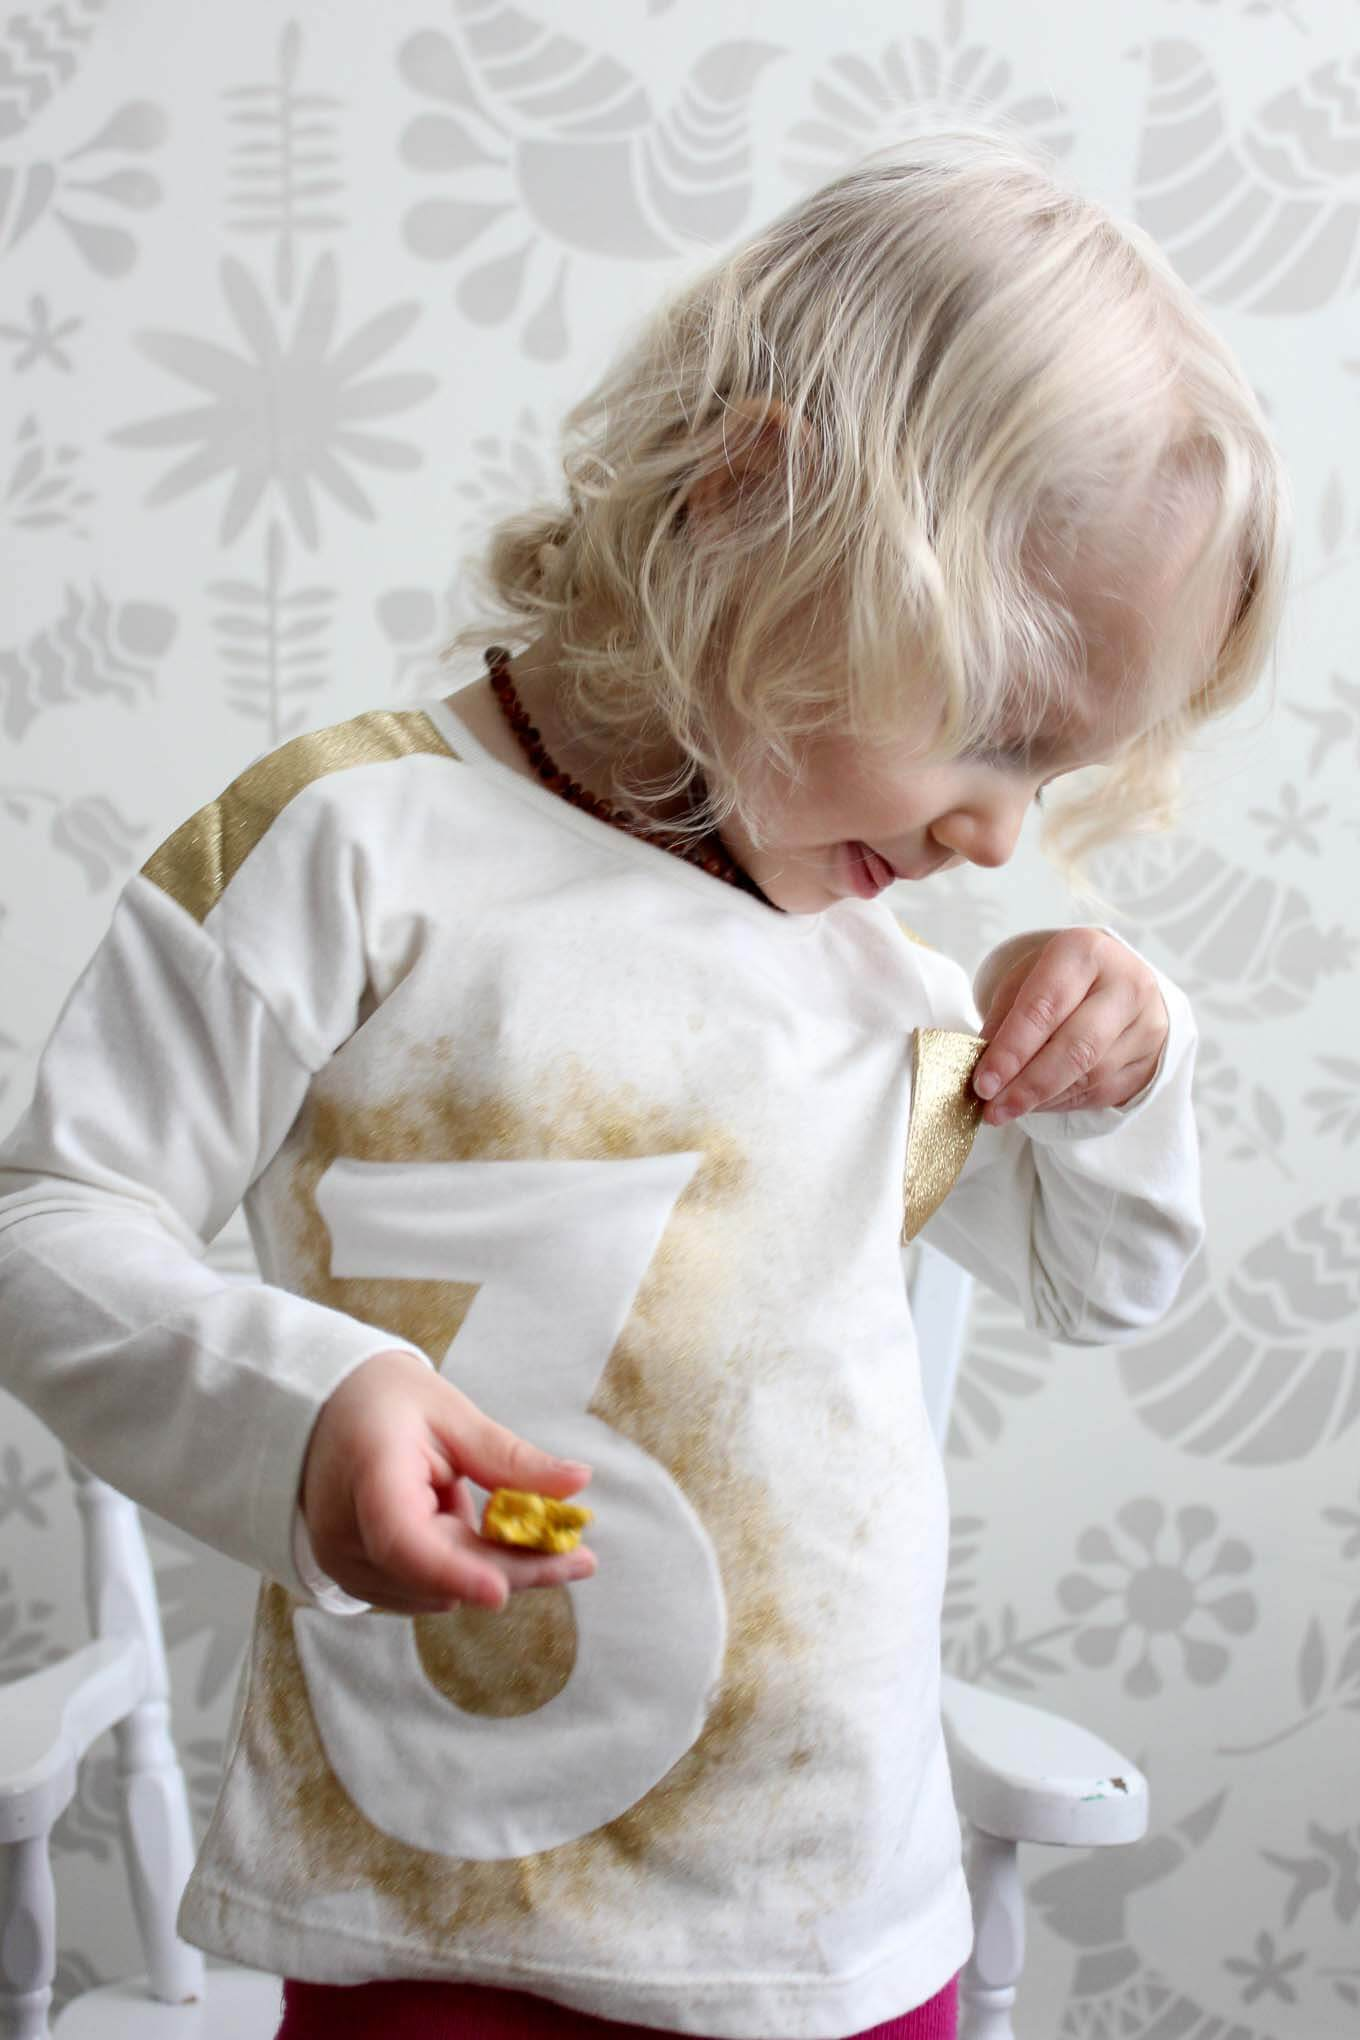 This DIY Birthday Shirt Is A Memorable Craft Idea To Make With Your Child For Their